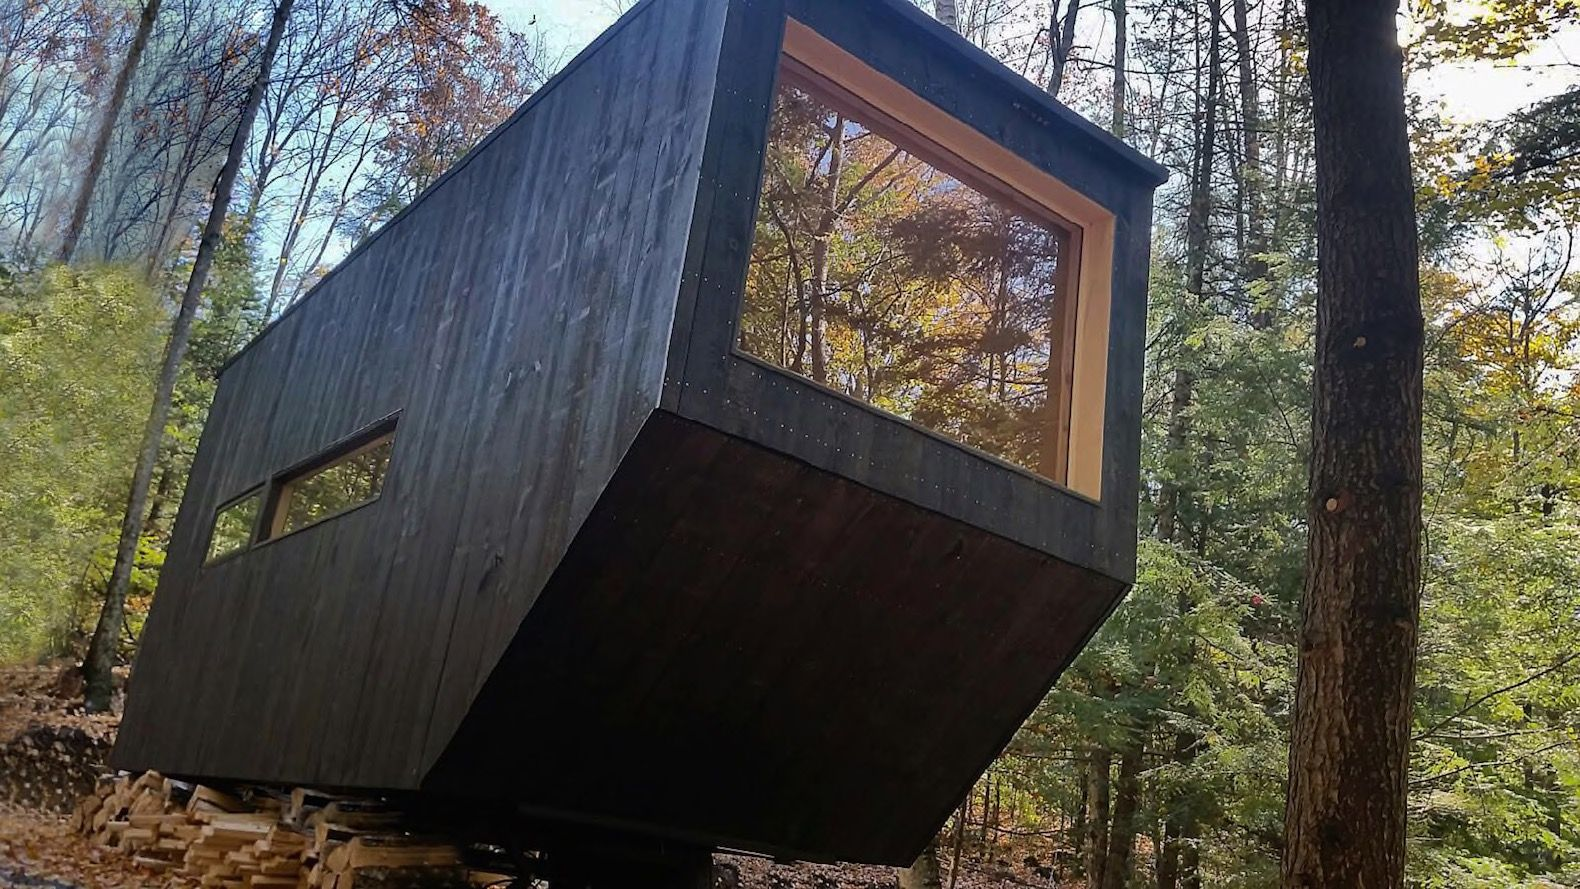 Harvard student startup unveils third tiny house that can be